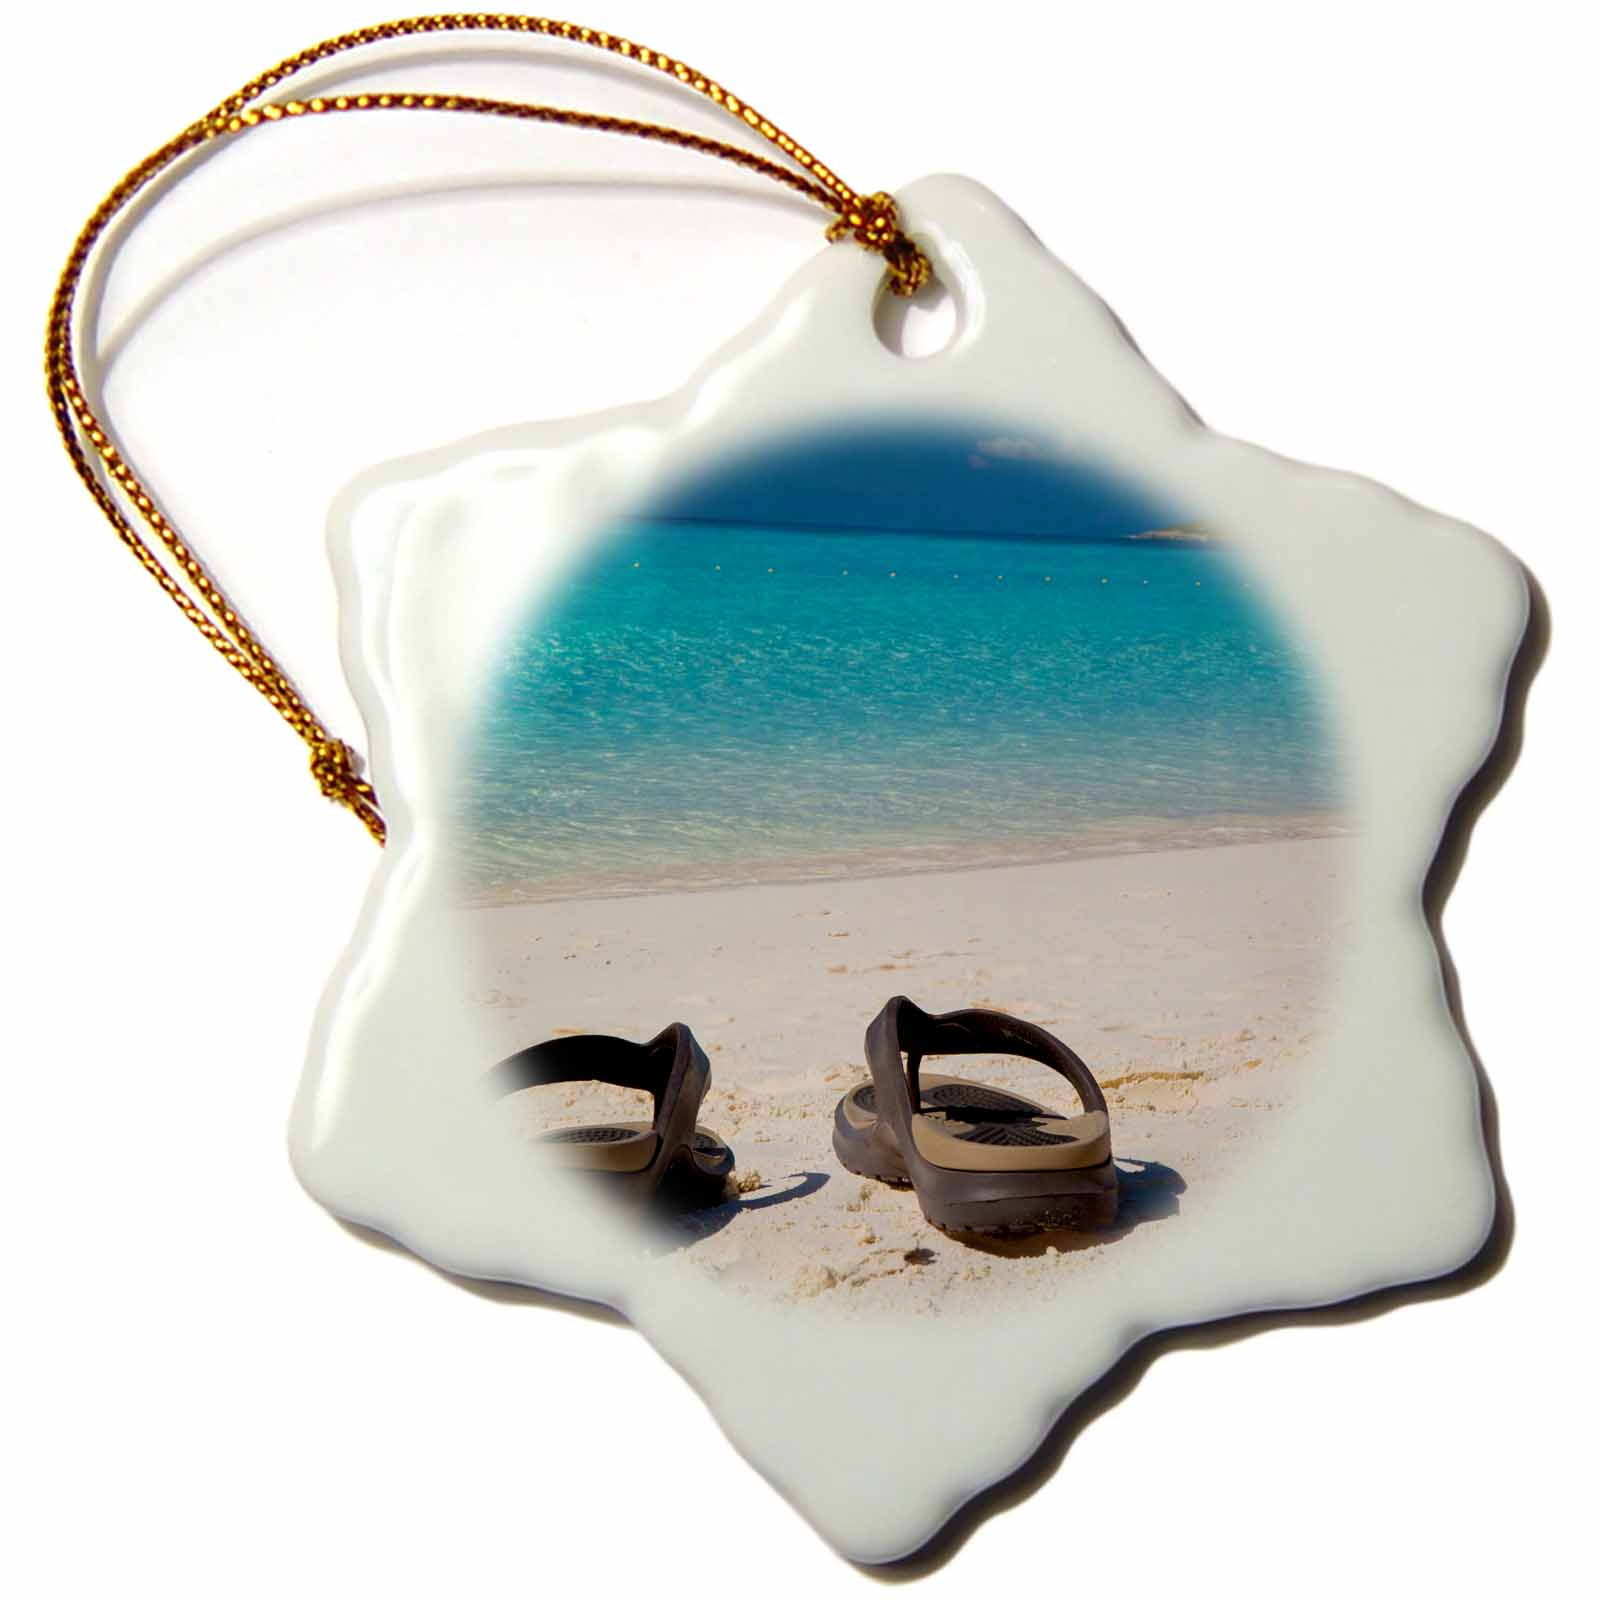 3dRose Flip flops beach with turquoise water beyond, Half moon Cay, Bahamas - Snowflake Ornament, 3-inch